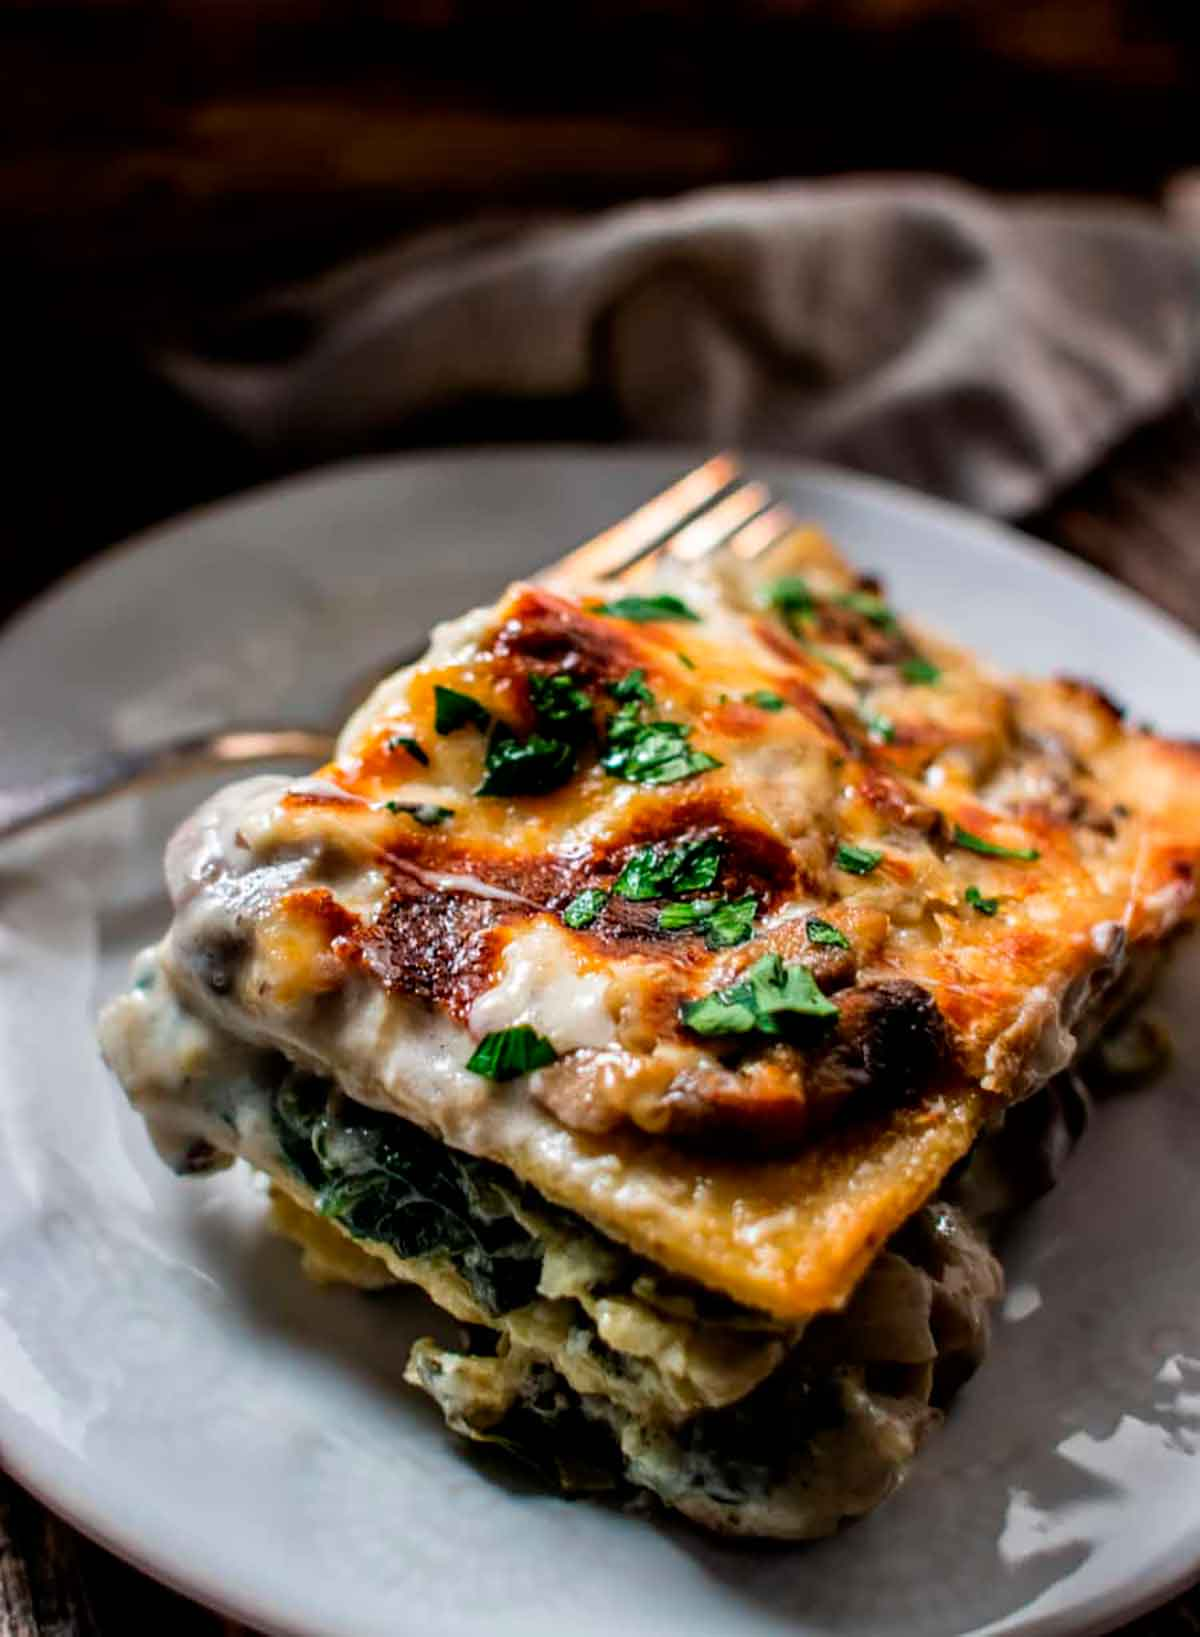 A slice of mushroom, spinach and artichoke lasagna on a plate.